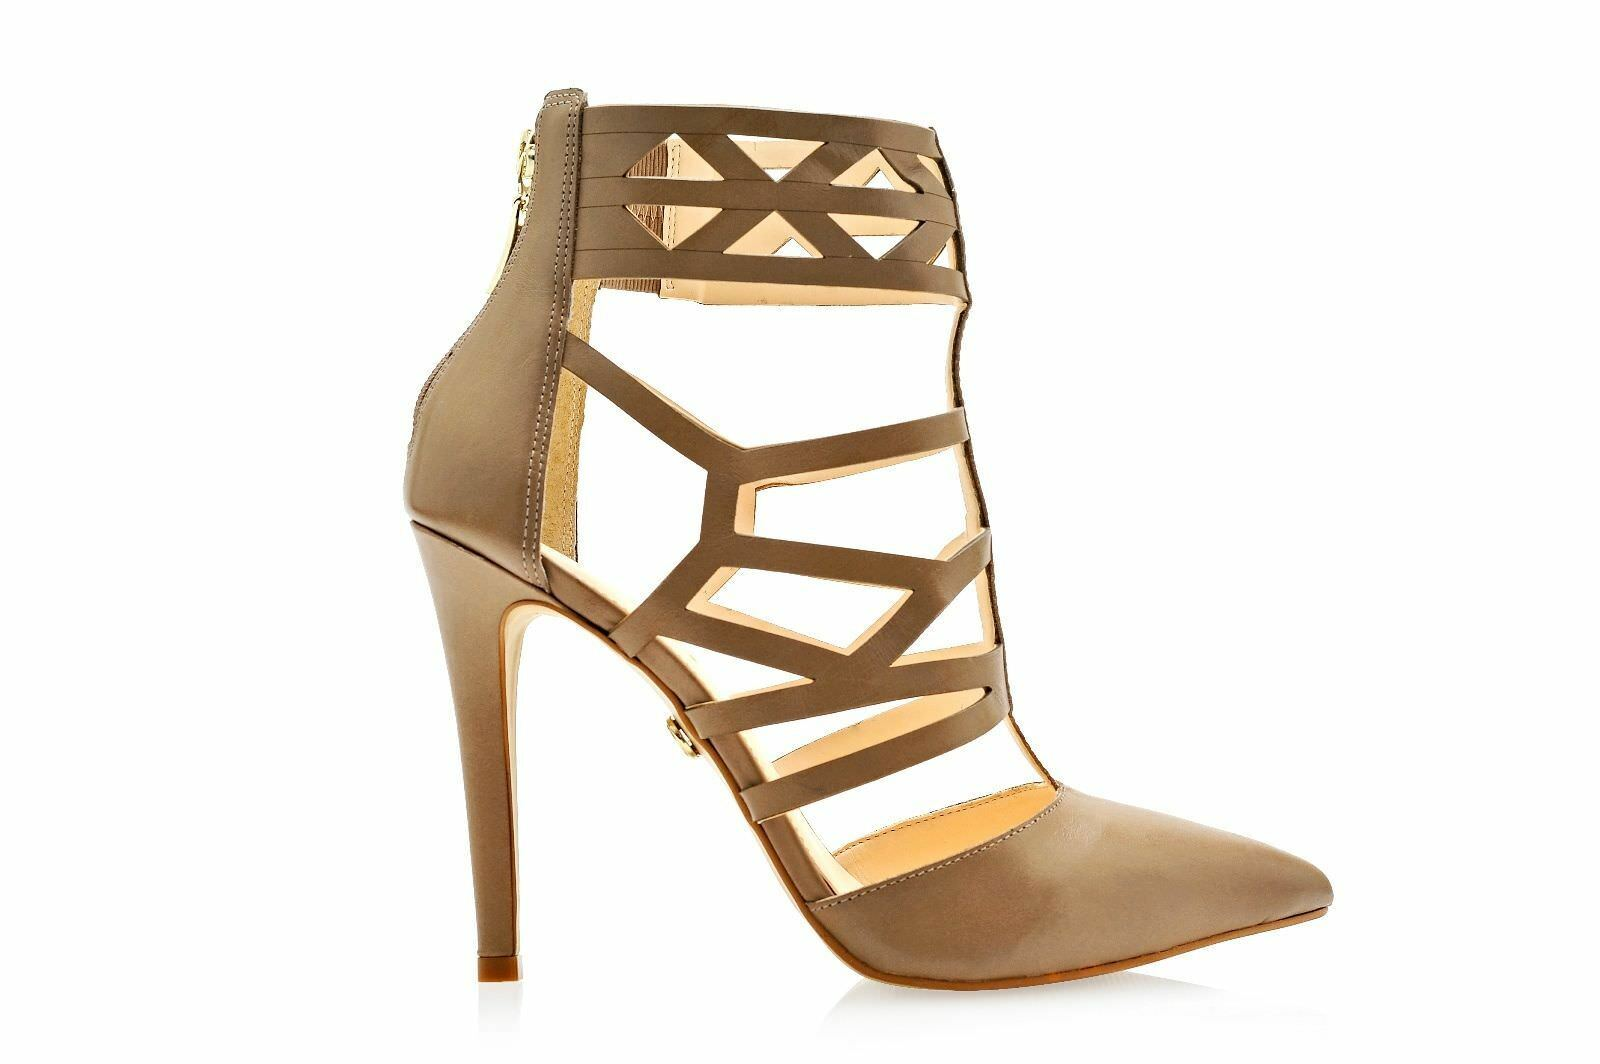 ESDRA POINTED TOE TOE TOE NUDE LEATHER SINGLE SOLE HIGH HEEL CUTOUT STRAPPY ANKLE StiefelIE 27db12